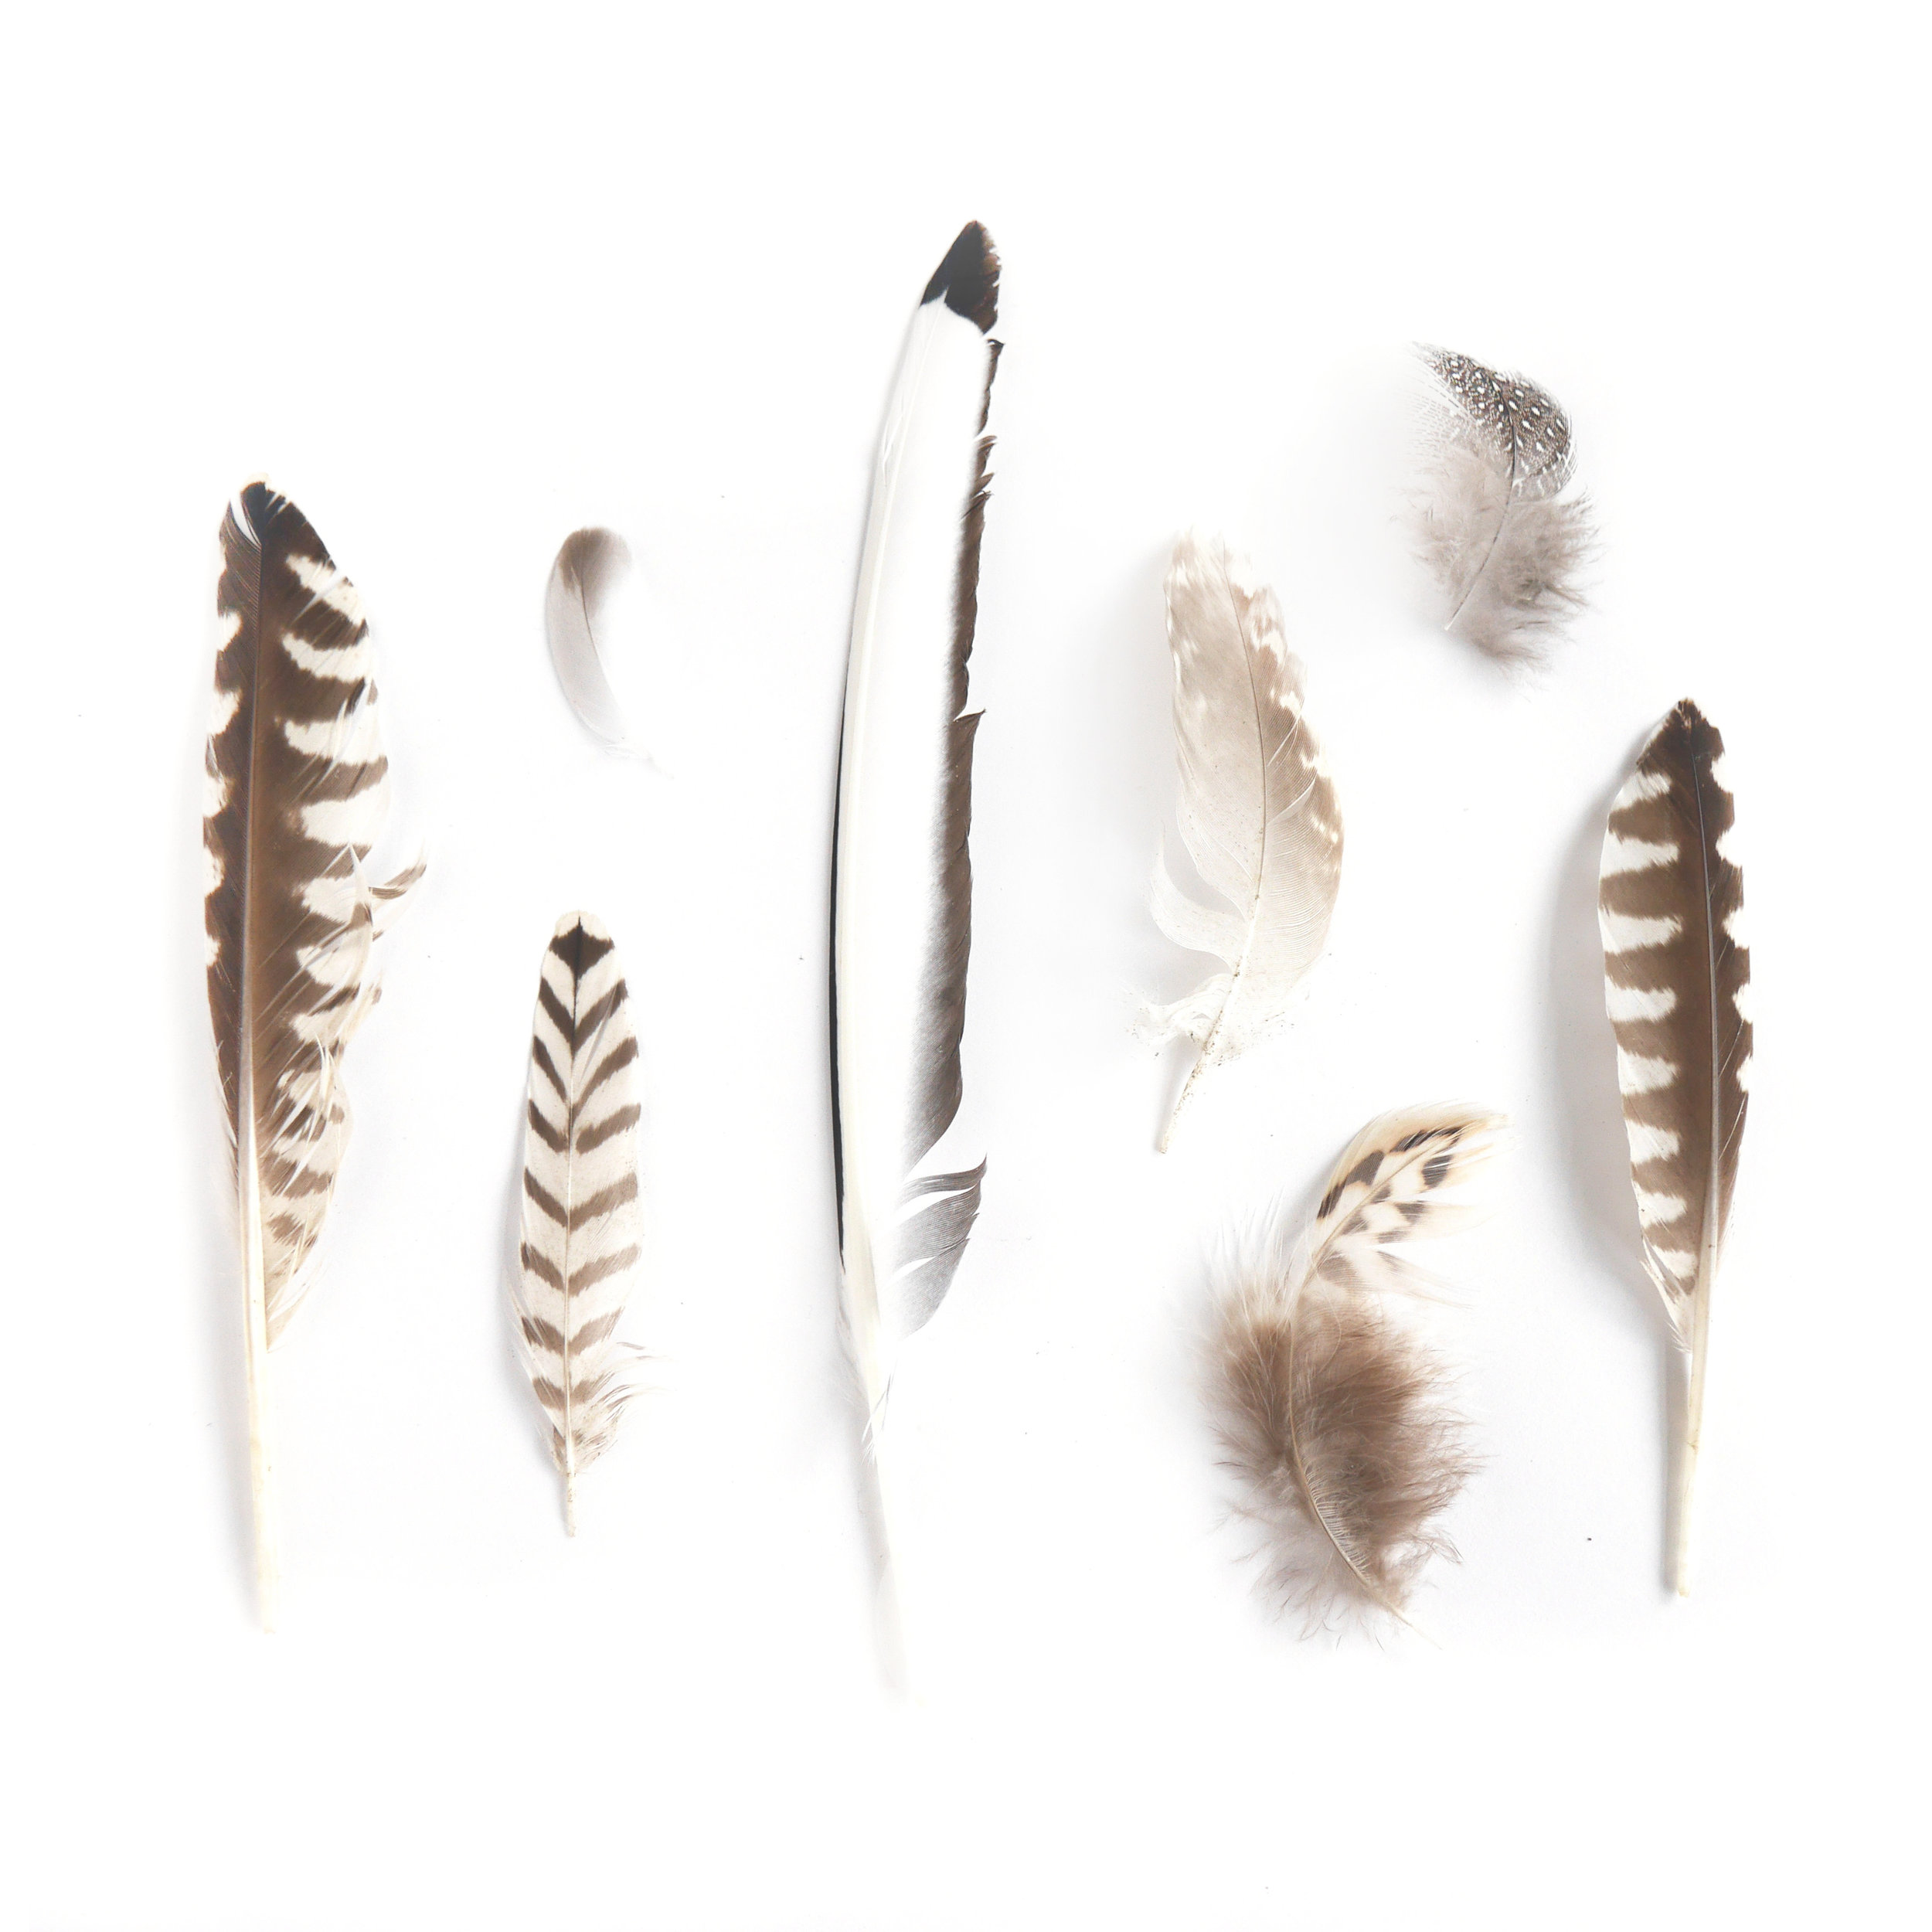 Feathers found whilst walking